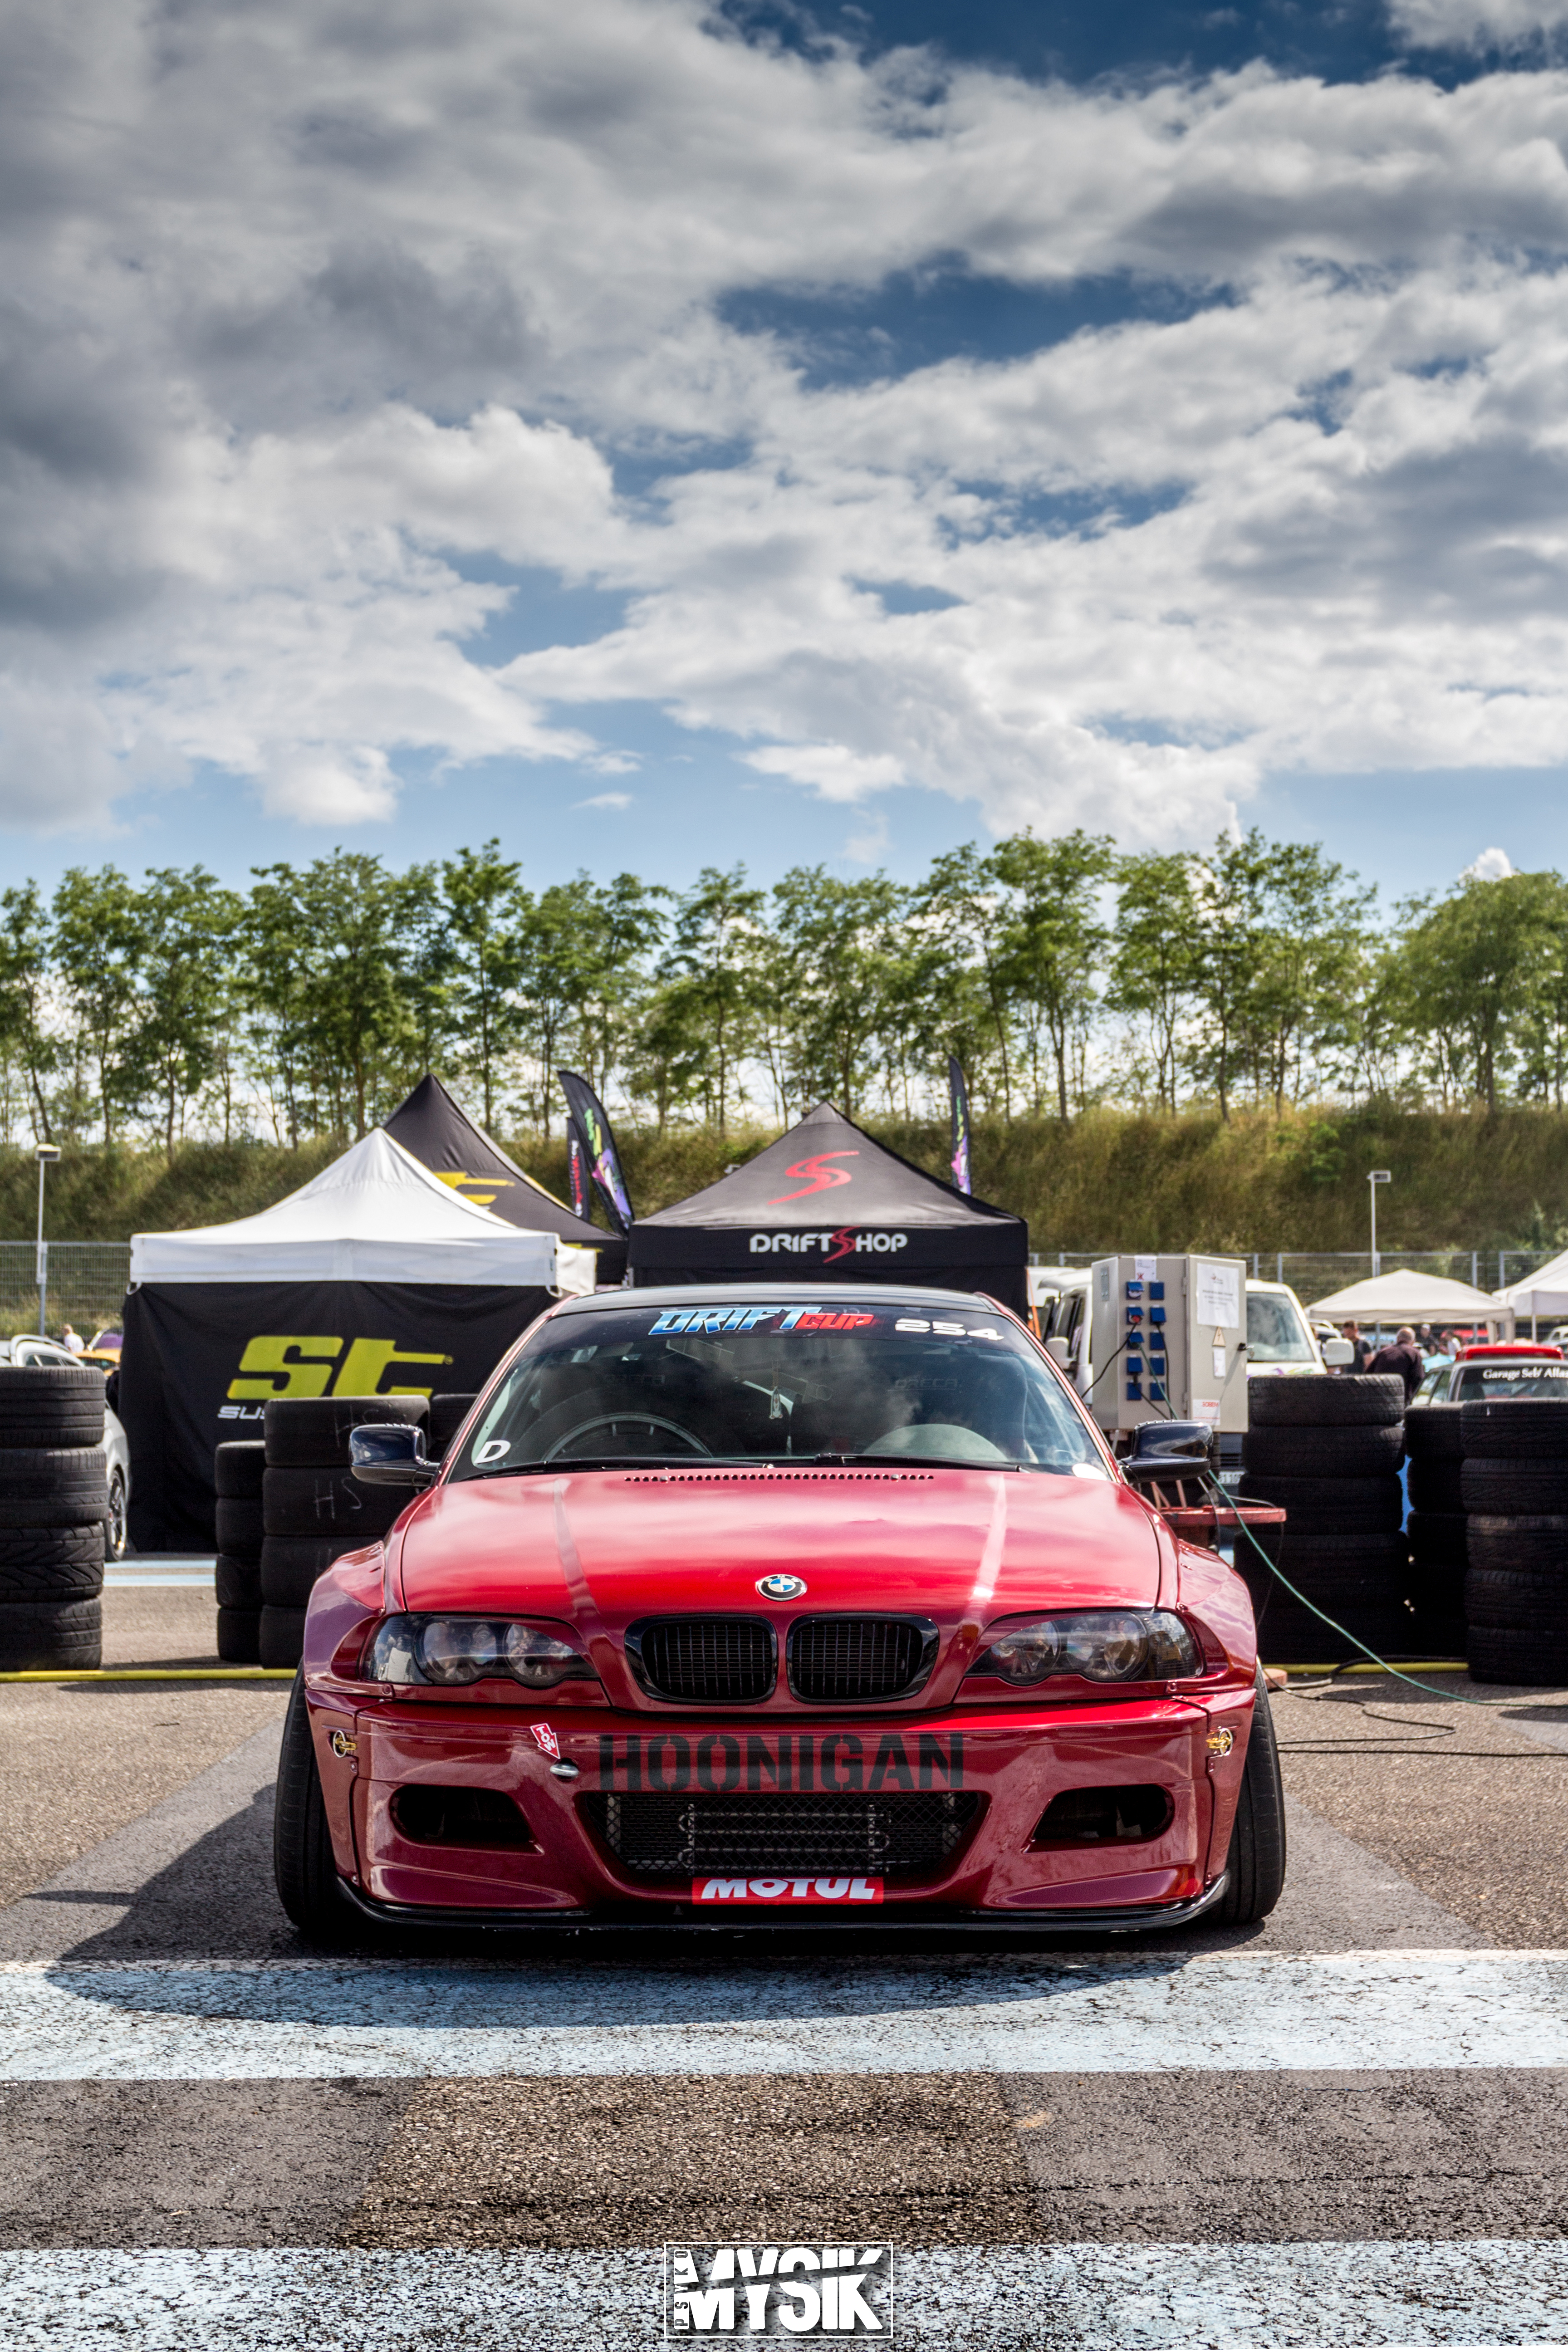 Bmw M3 E46 Wallpaper Android Iphone By Psykomysik By